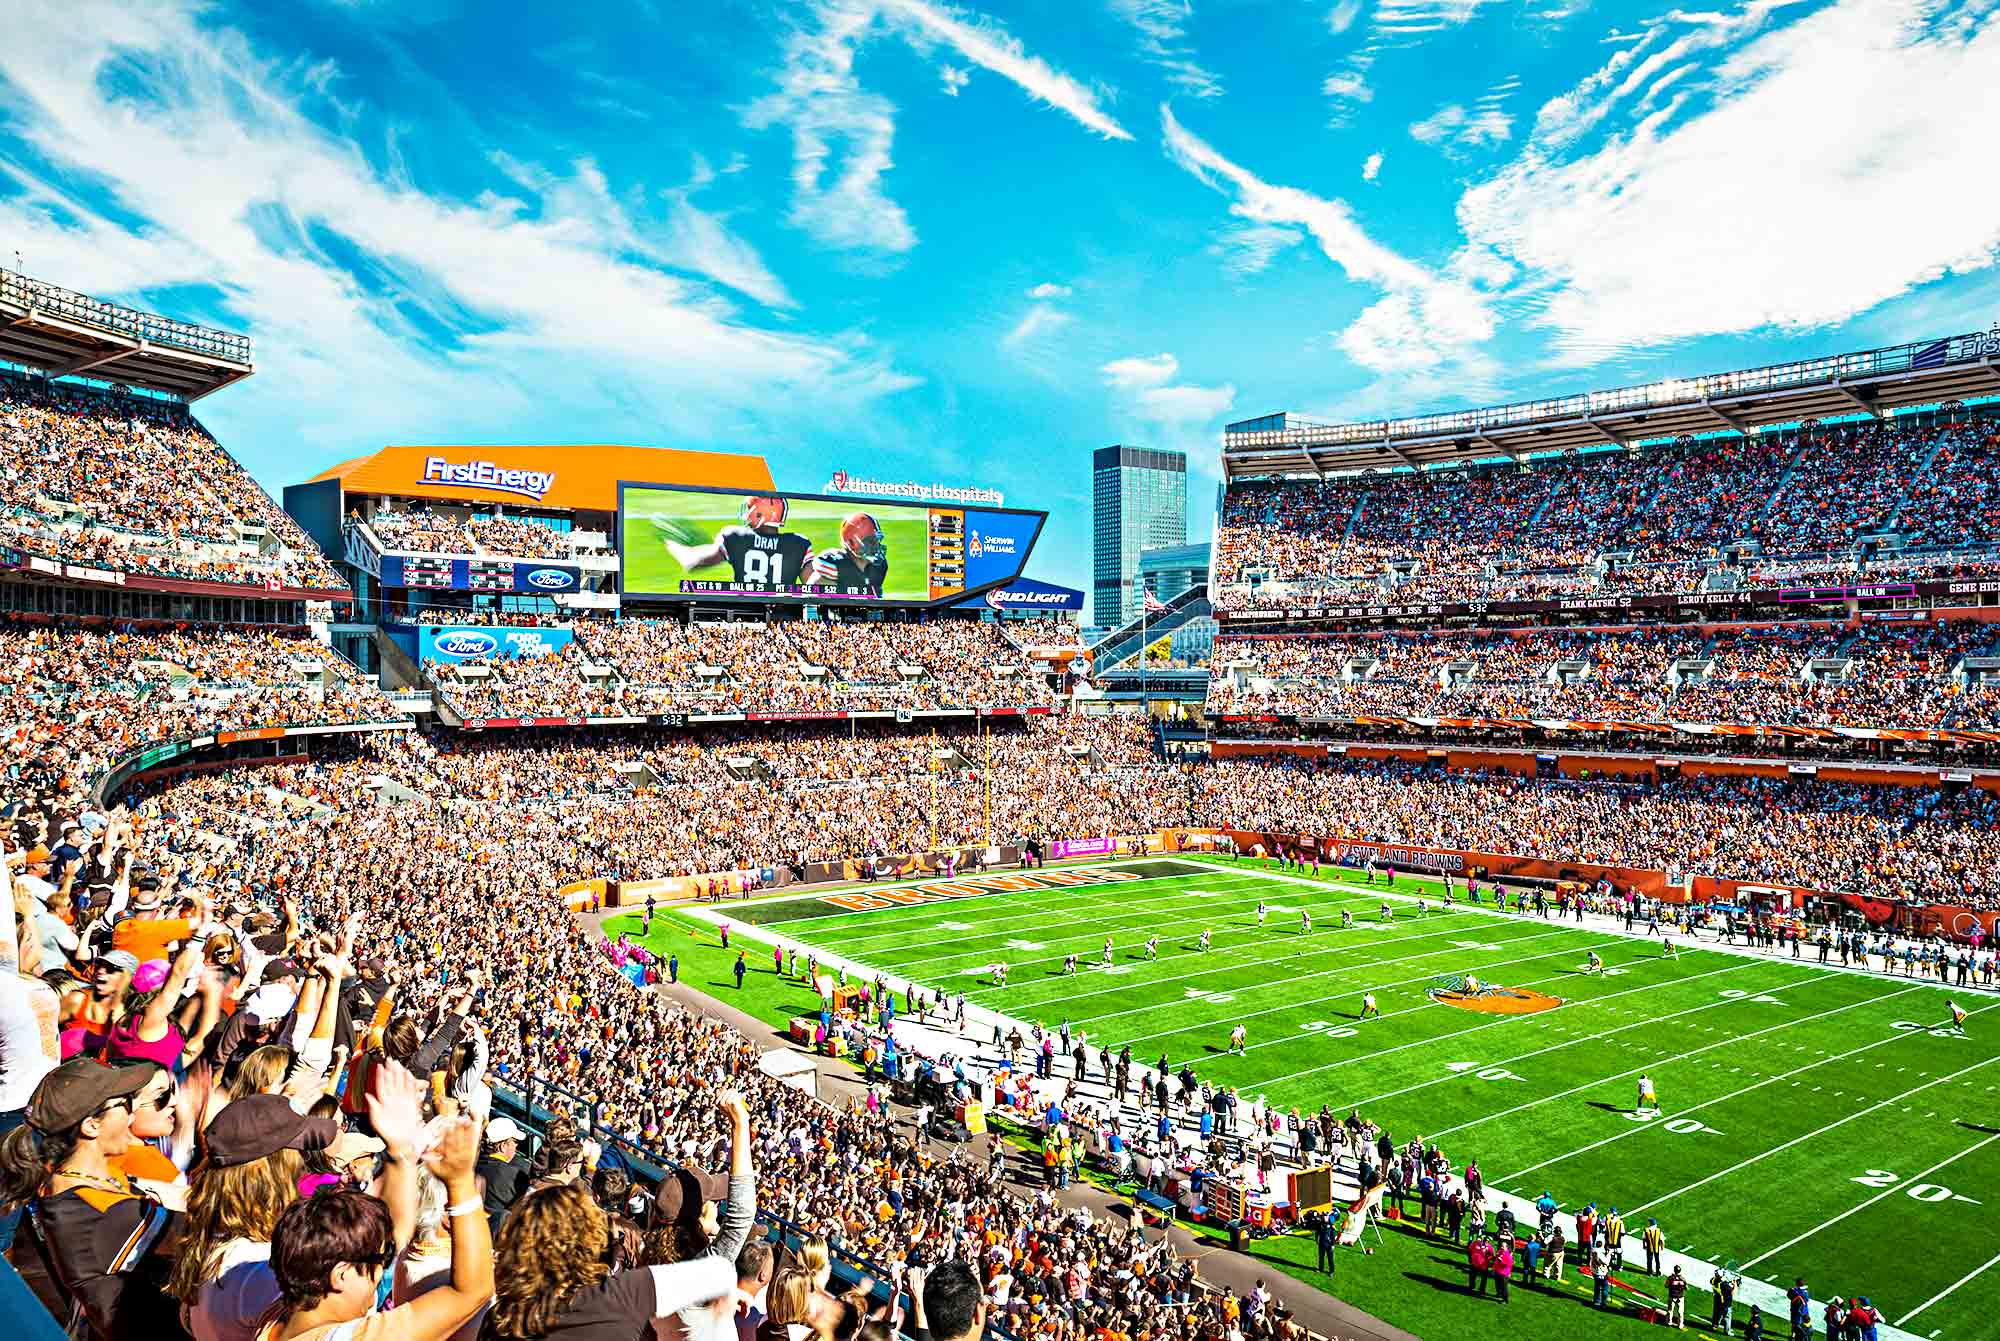 Nfl Wallpaper Hd The Future Of Lifestyle Gensler